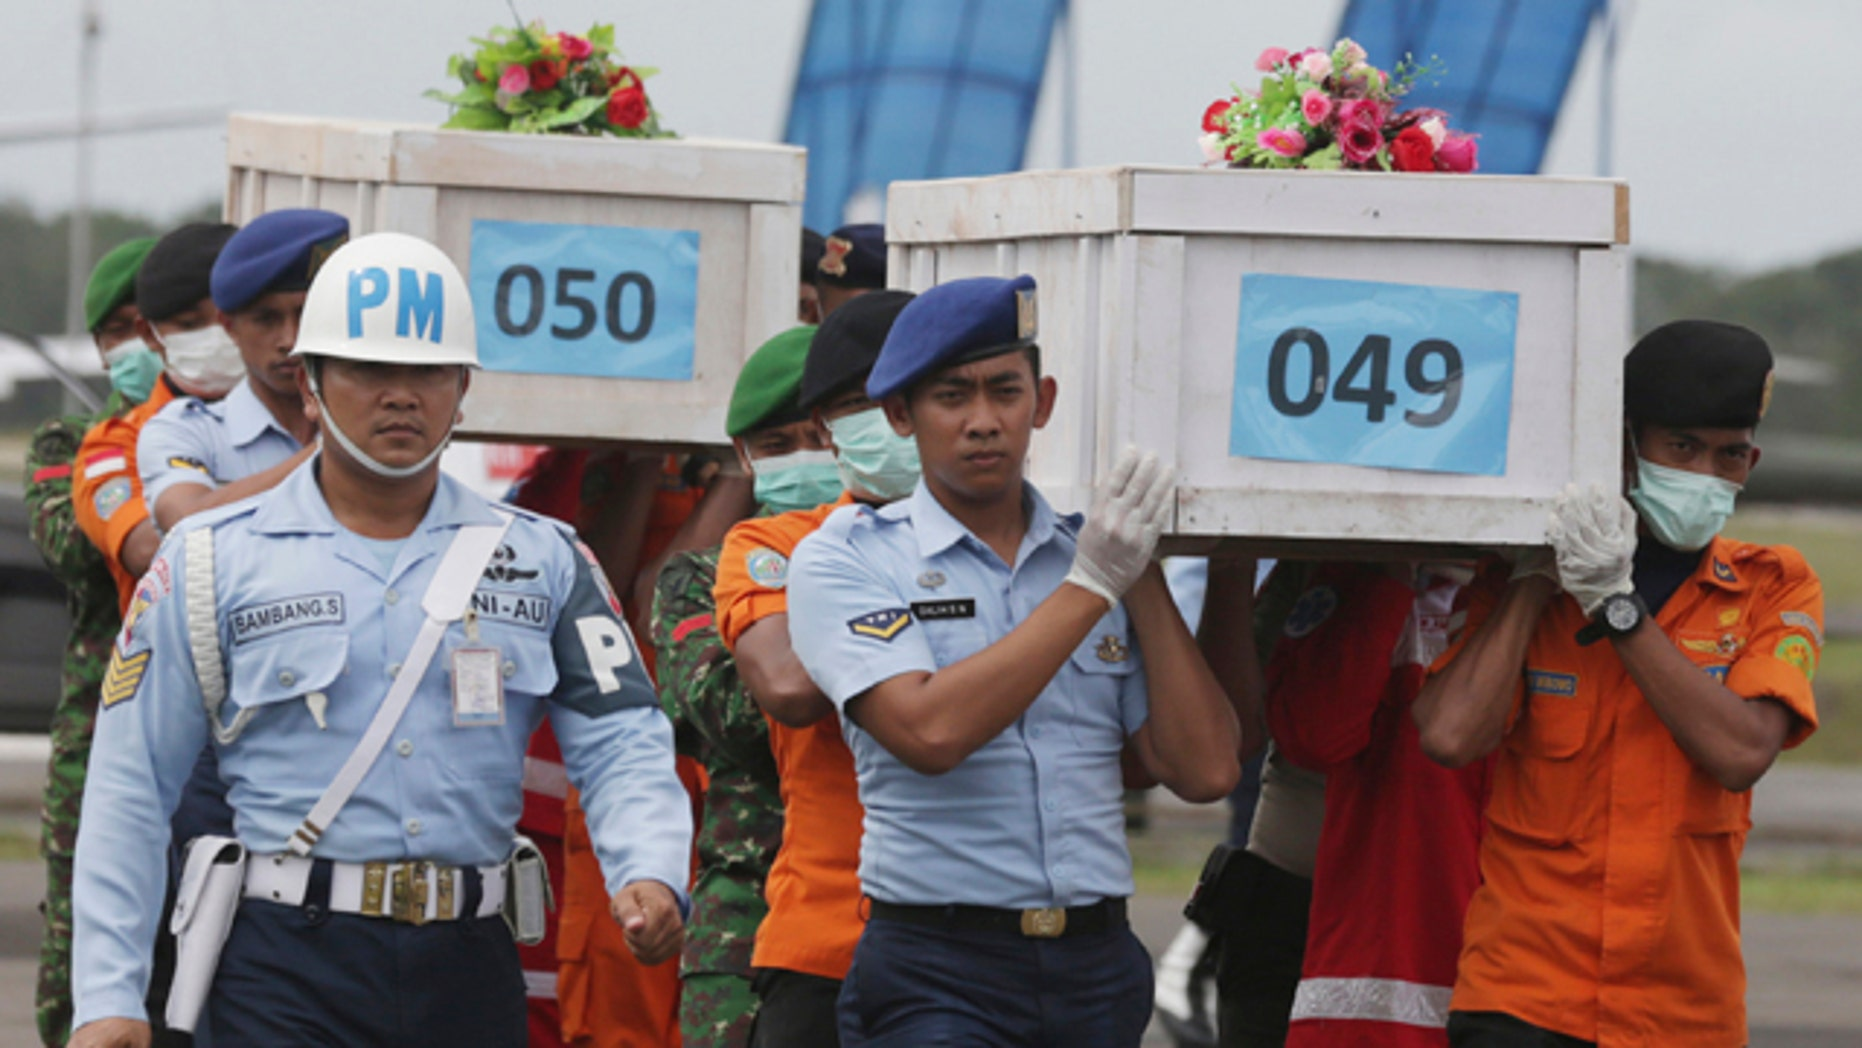 Jan. 19, 2015: Mmbers of the National Search and Rescue Agency carry coffins containing bodies of the victims aboard AirAsia Flight 8501 to transfer to Surabaya at the airport in Pangkalan Bun, Indonesia. (AP Photo/Achmad Ibrahim, File)